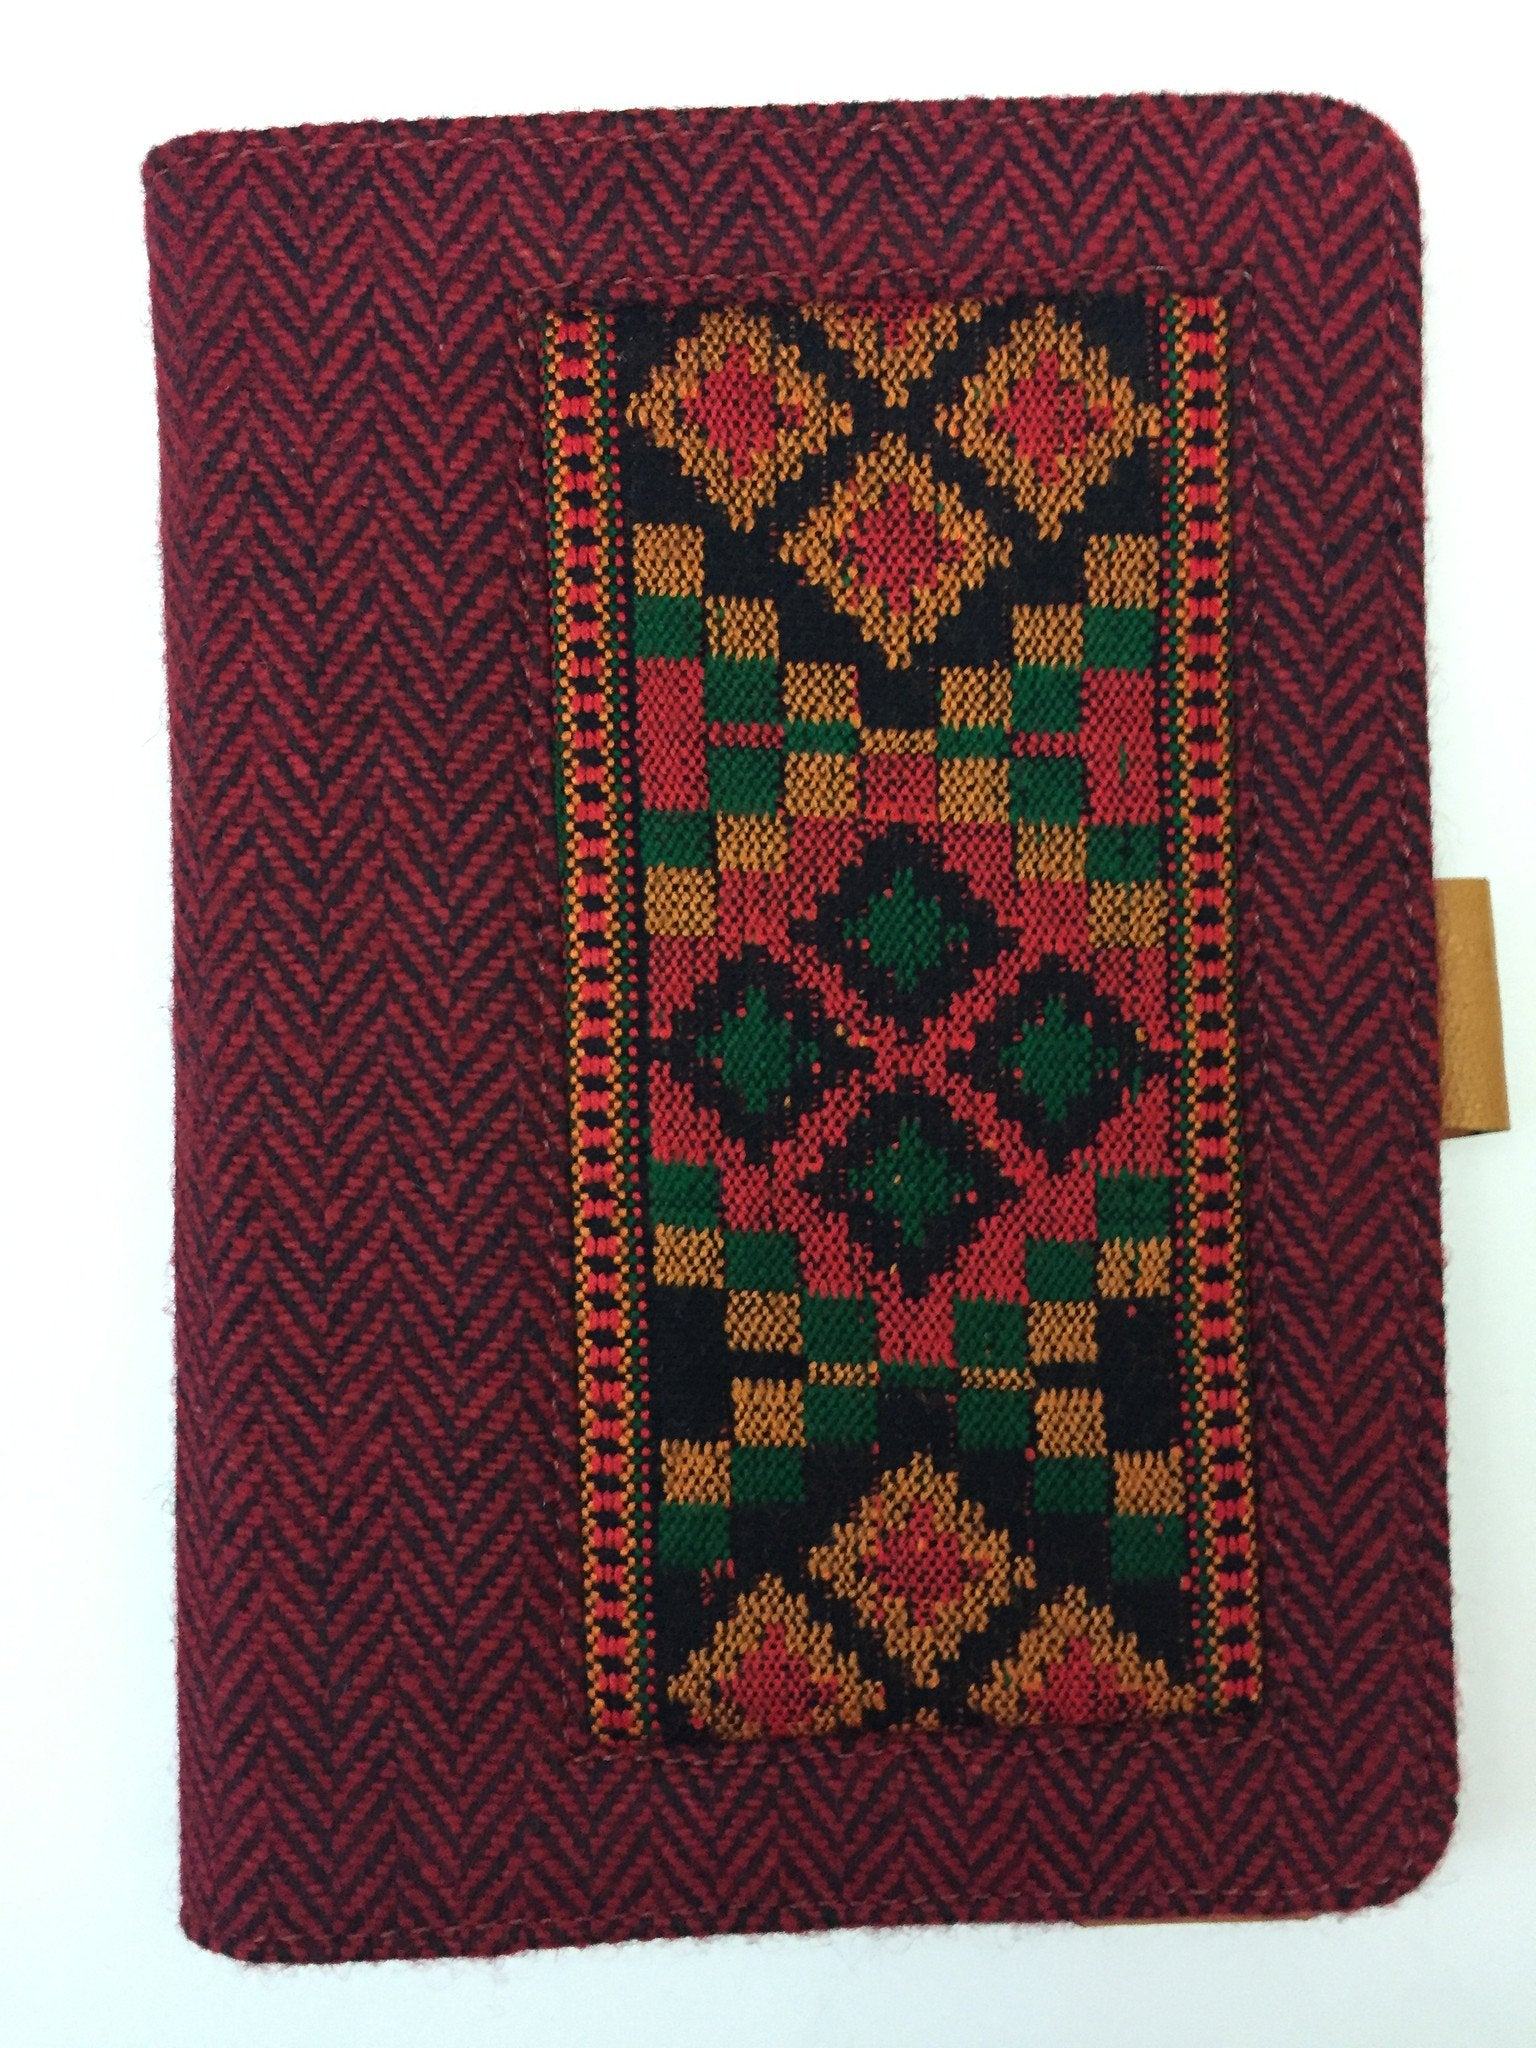 iPad mini cover Designer, stand and protection. Burgundy & Black with beautiful embroidered pattern. handmade. Hard shell.